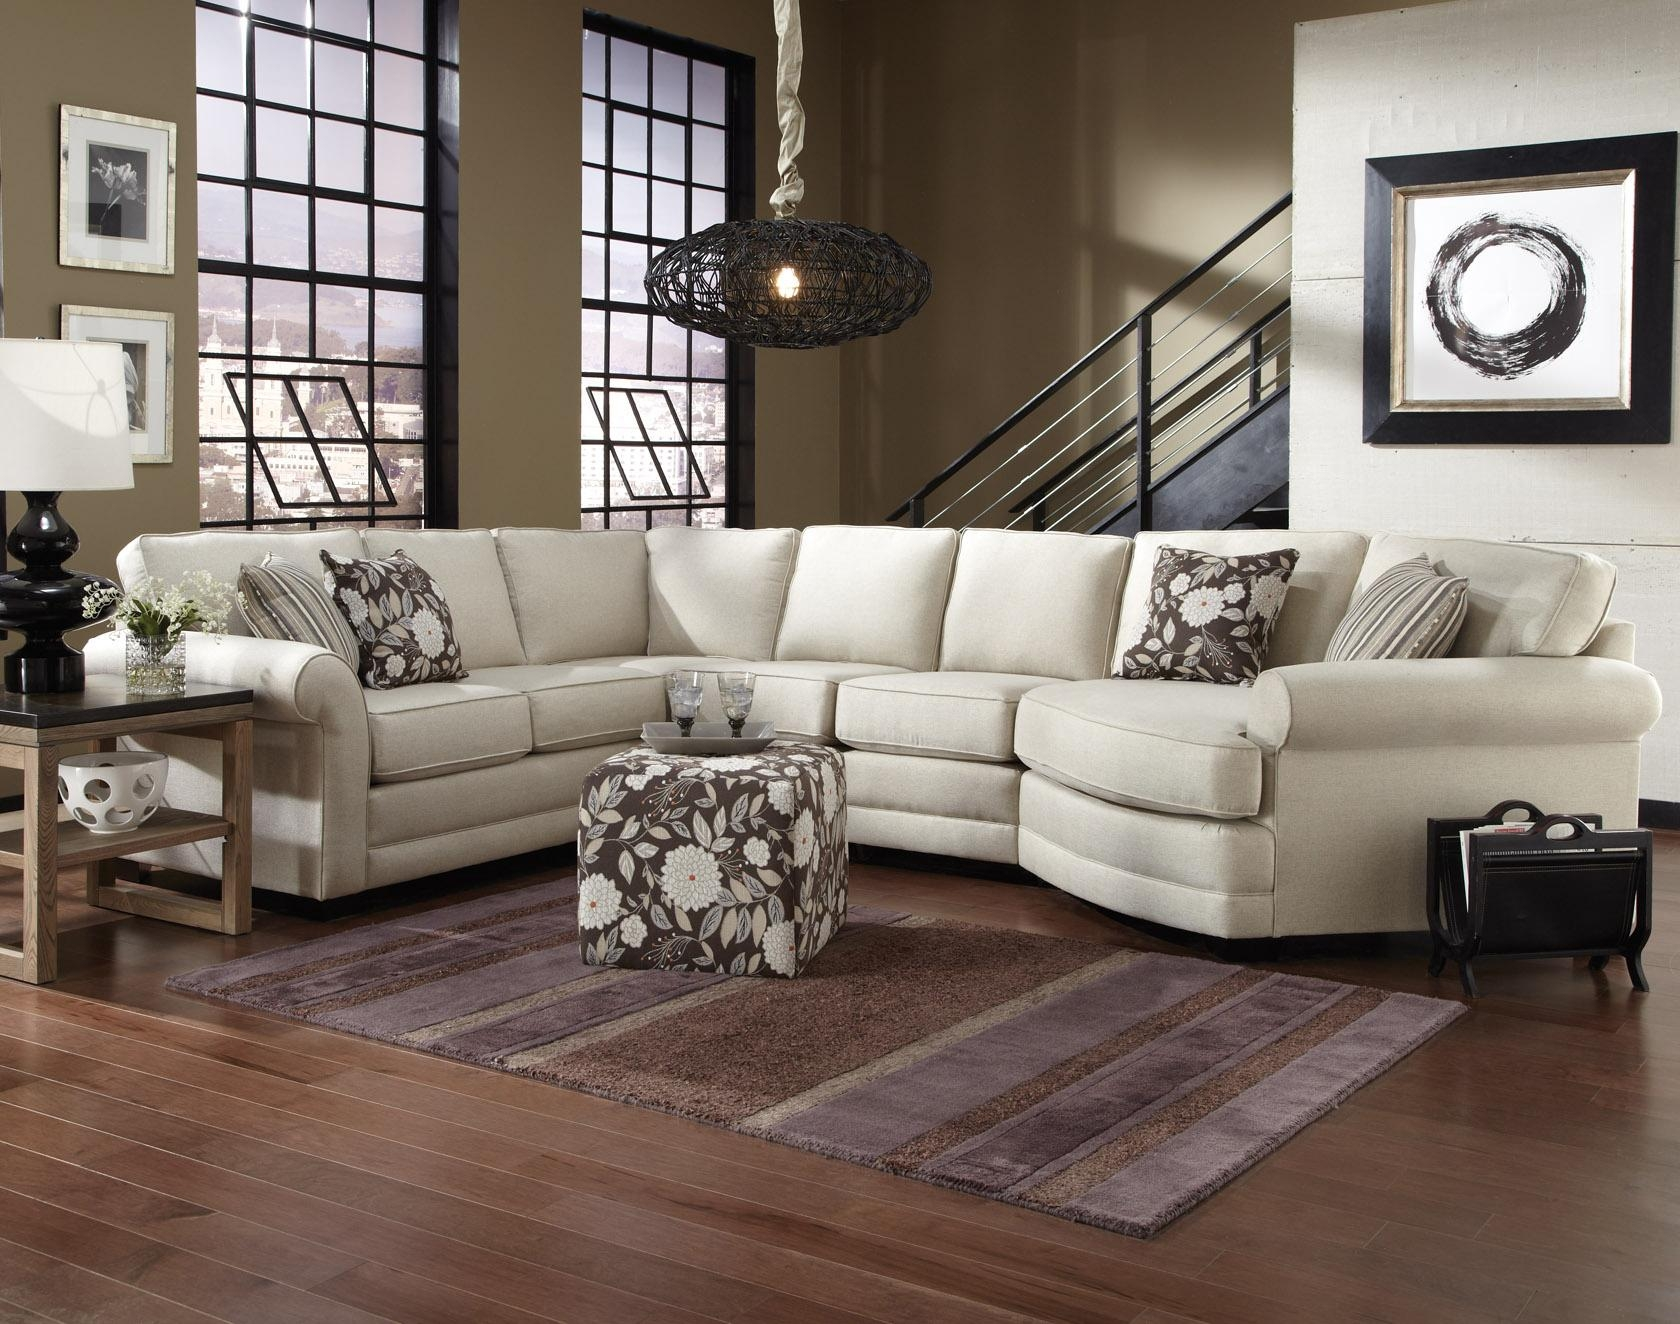 Sectional With Cuddler Condo Furniture Pinterest See Best Regarding Cuddler Sectional Sofa (Image 13 of 15)